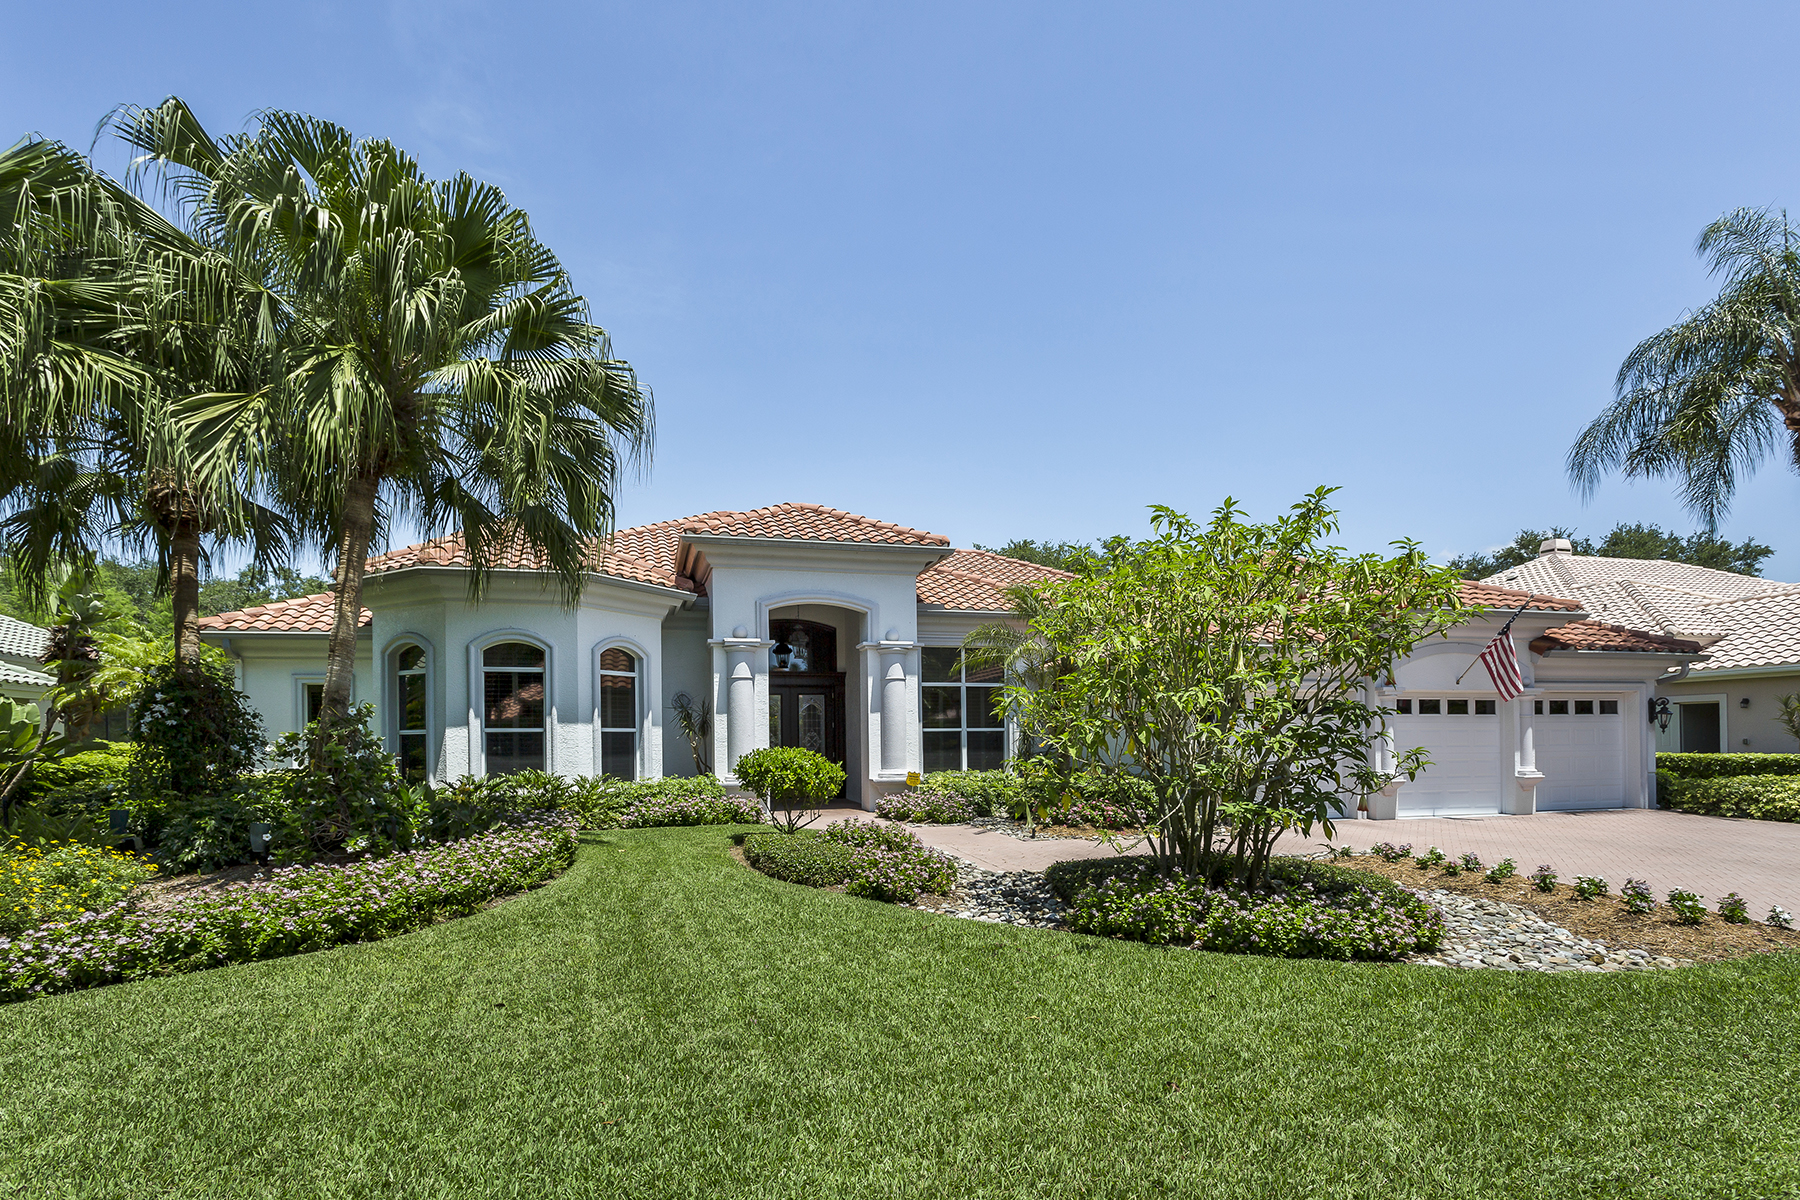 Casa Unifamiliar por un Venta en Arbor Glen 6660 Glen Arbor Way Vineyards, Naples, Florida, 34119 Estados Unidos